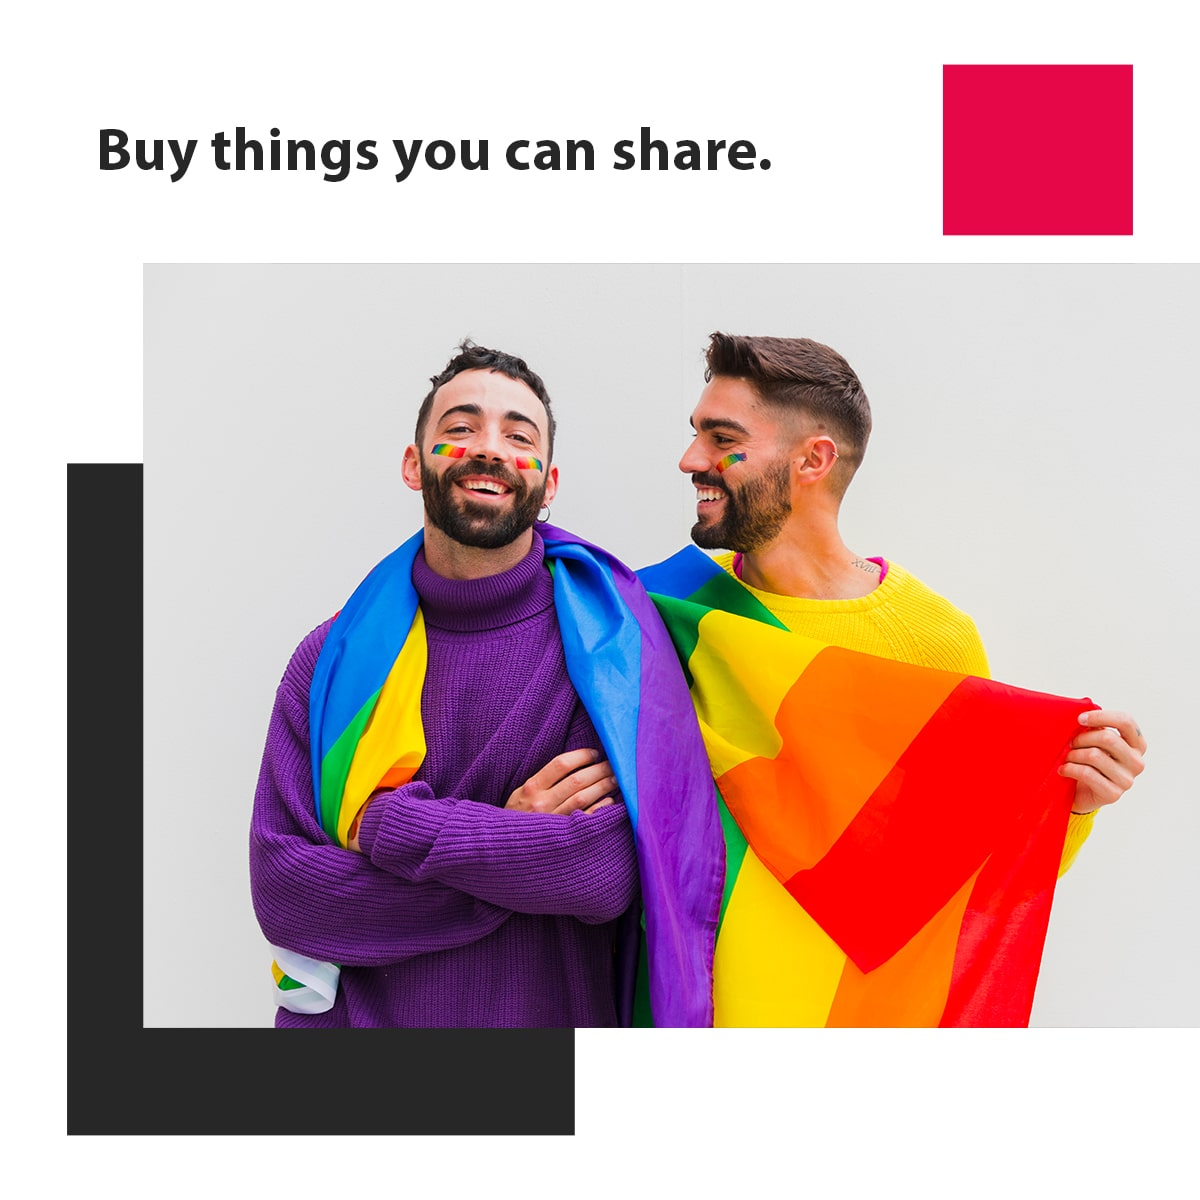 Buy some clothing you can share